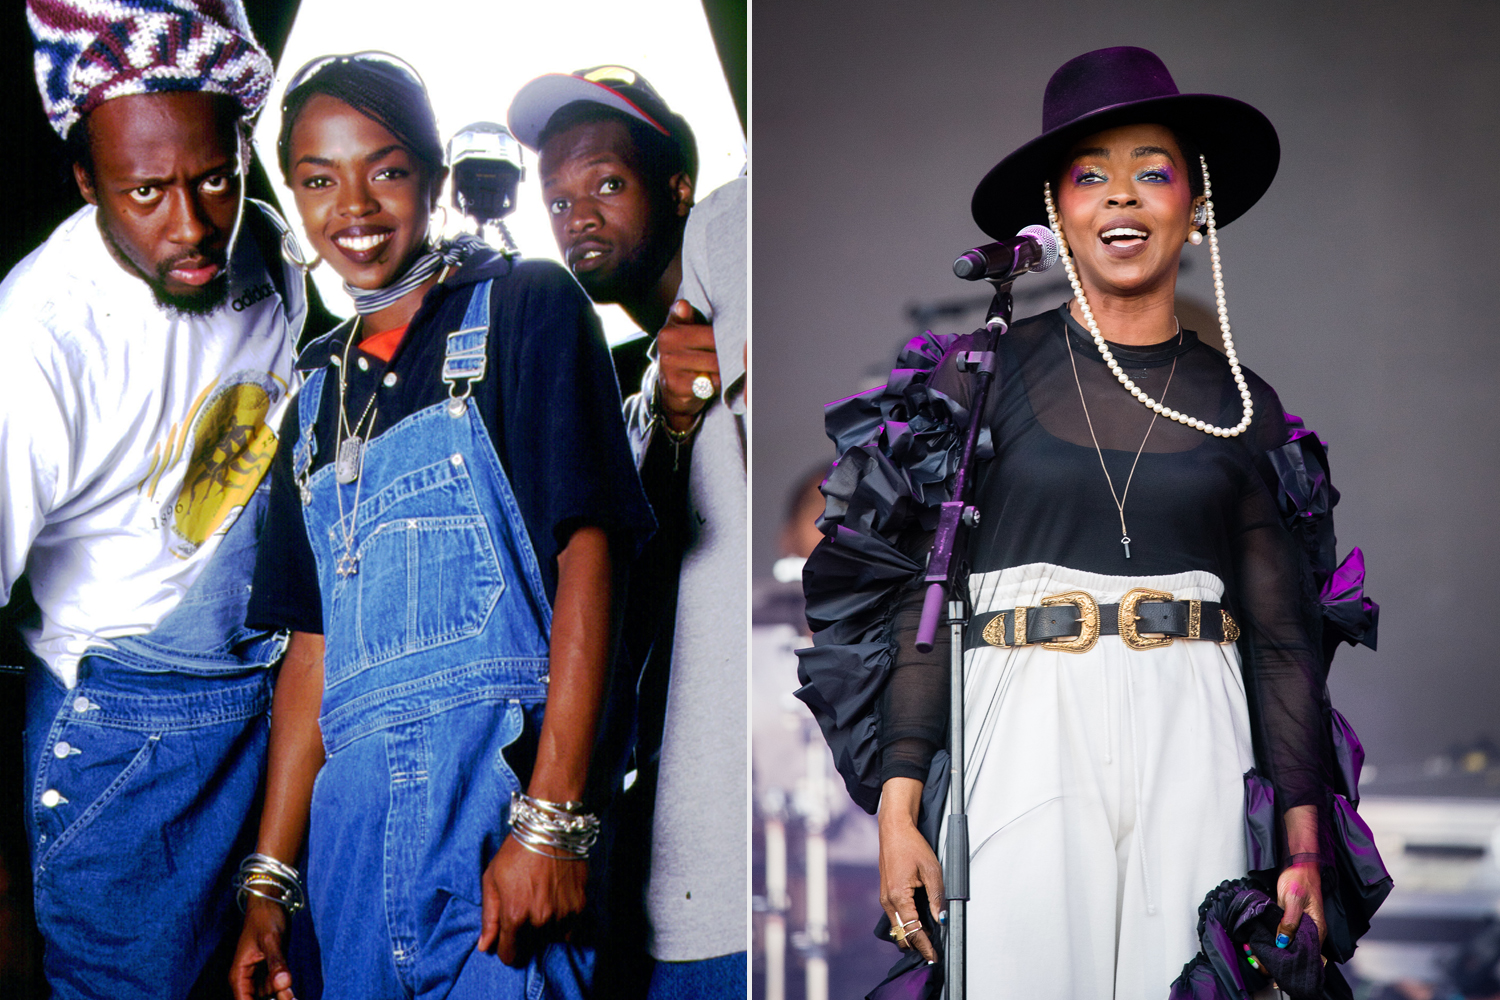 the Fugees; Lauryn Hill